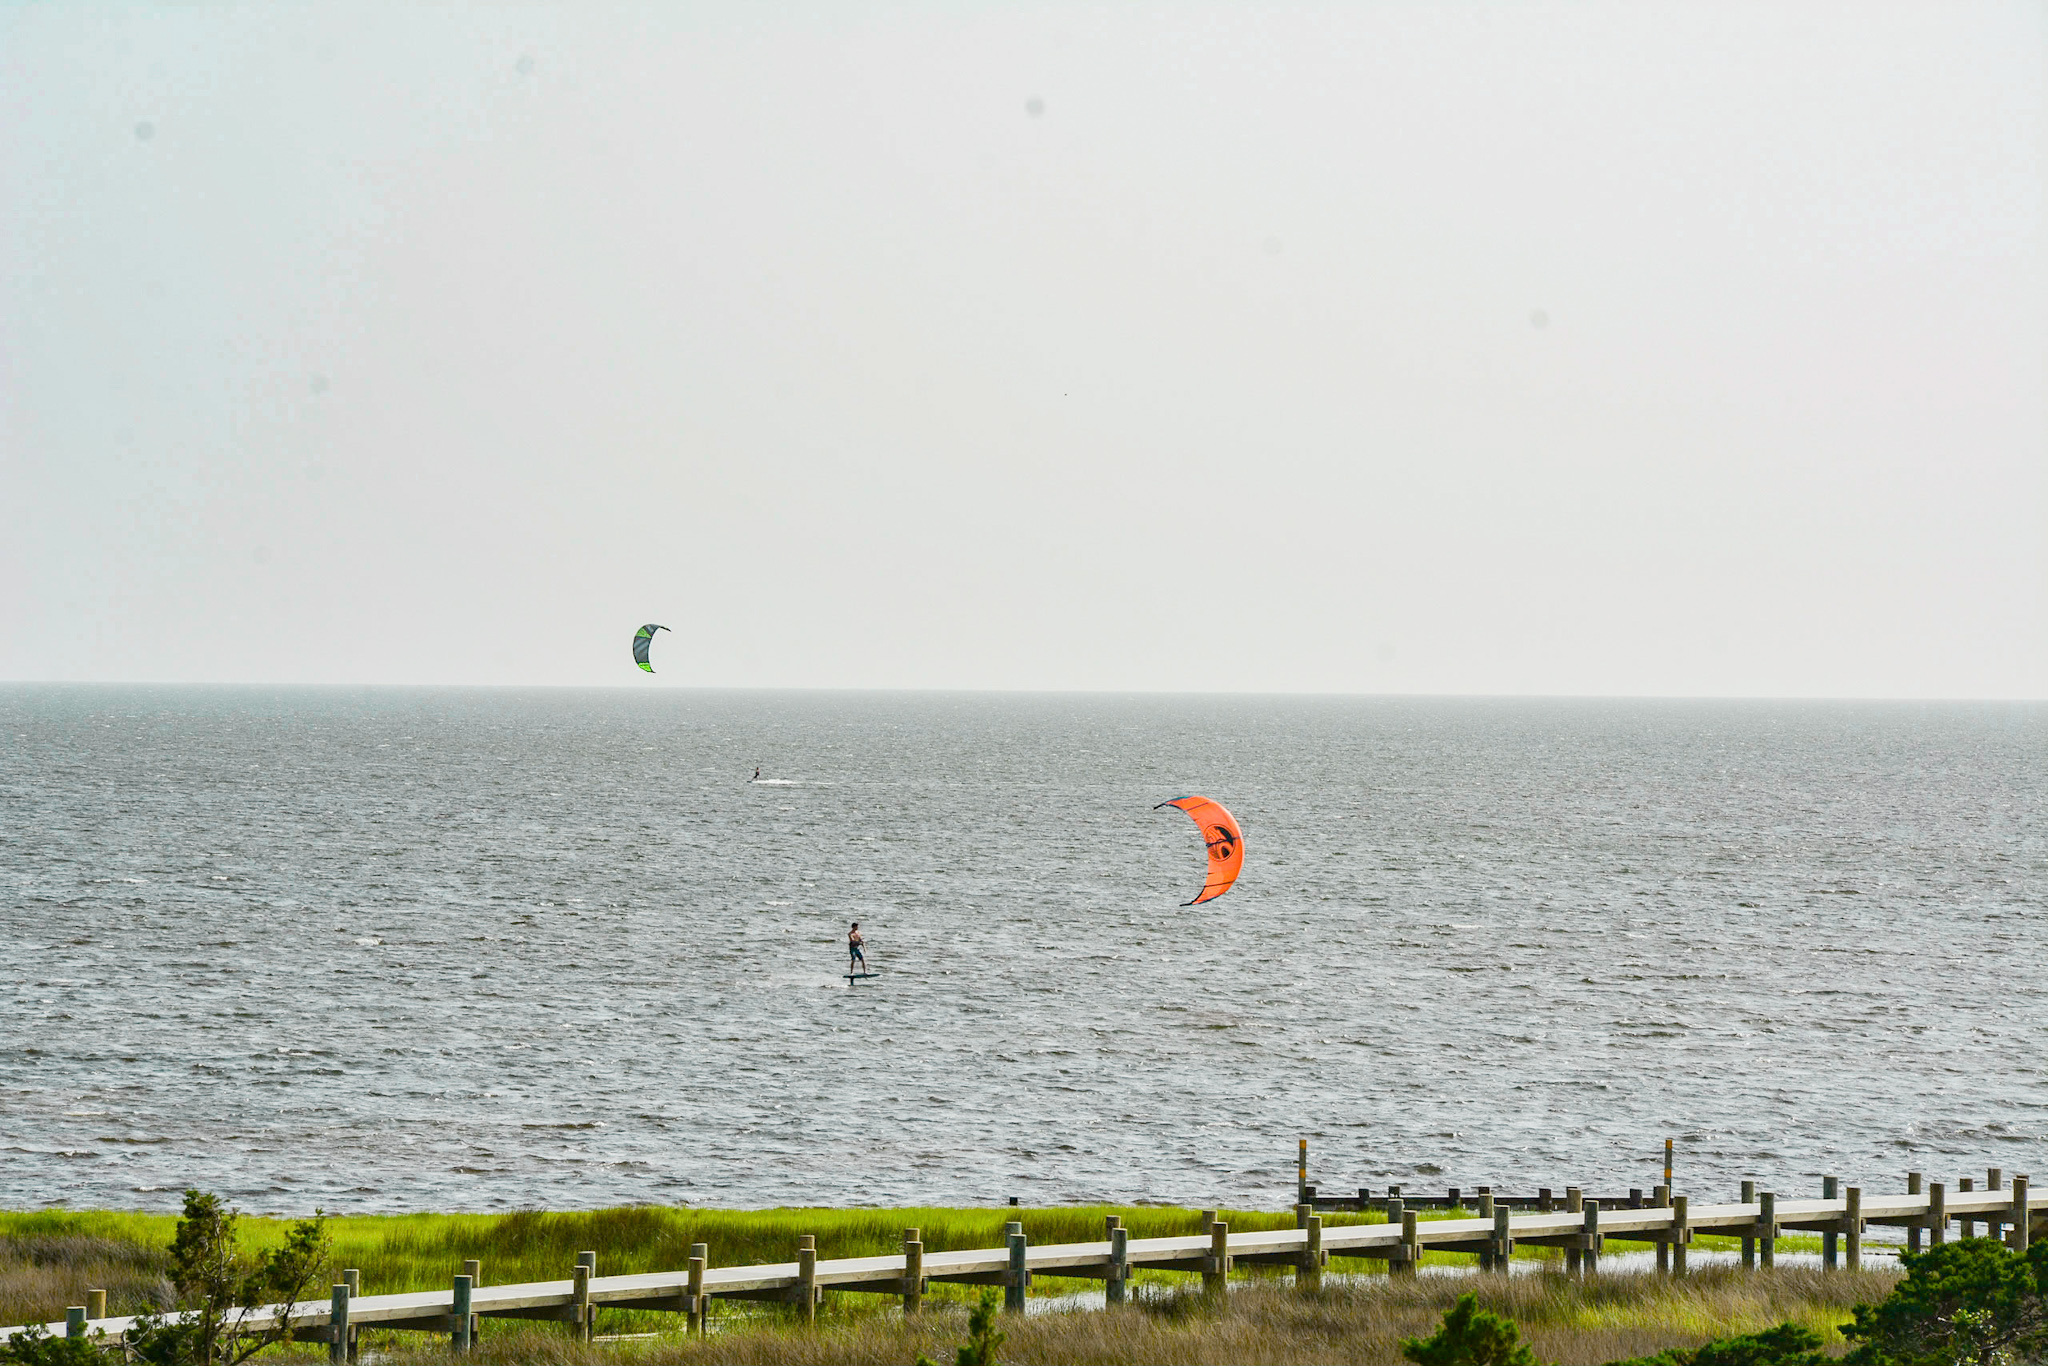 Kite surfing - Outer Banks Beach